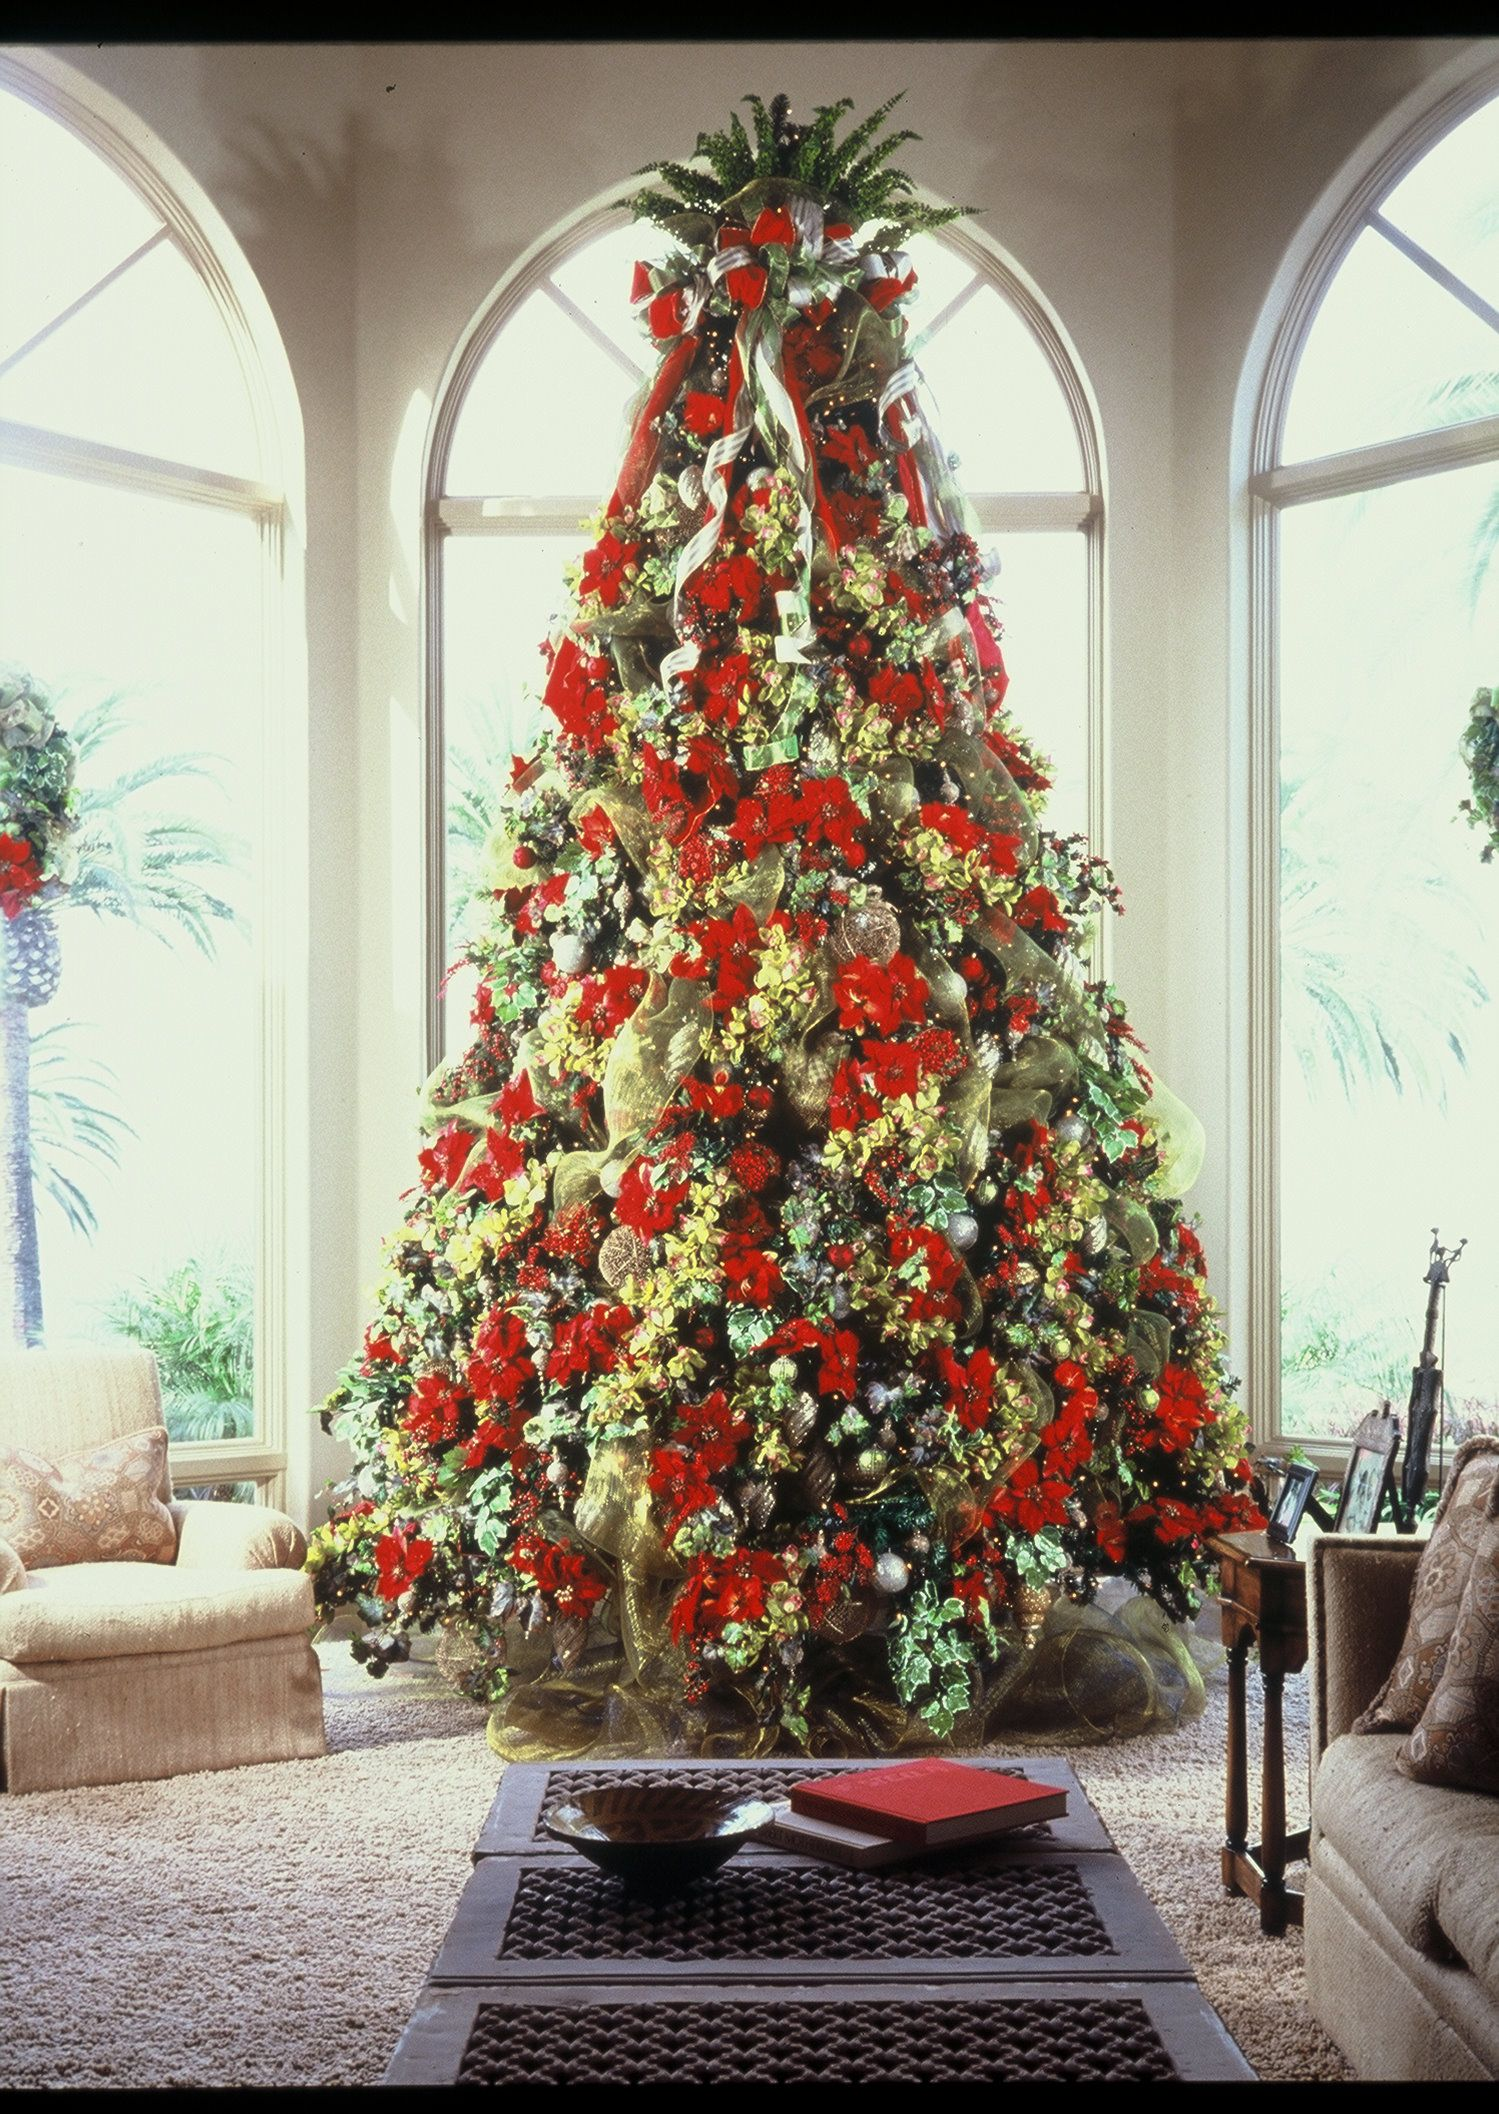 wwwleannemichaelcom 15ft tree dressed in red poinsettias green orchids and gold